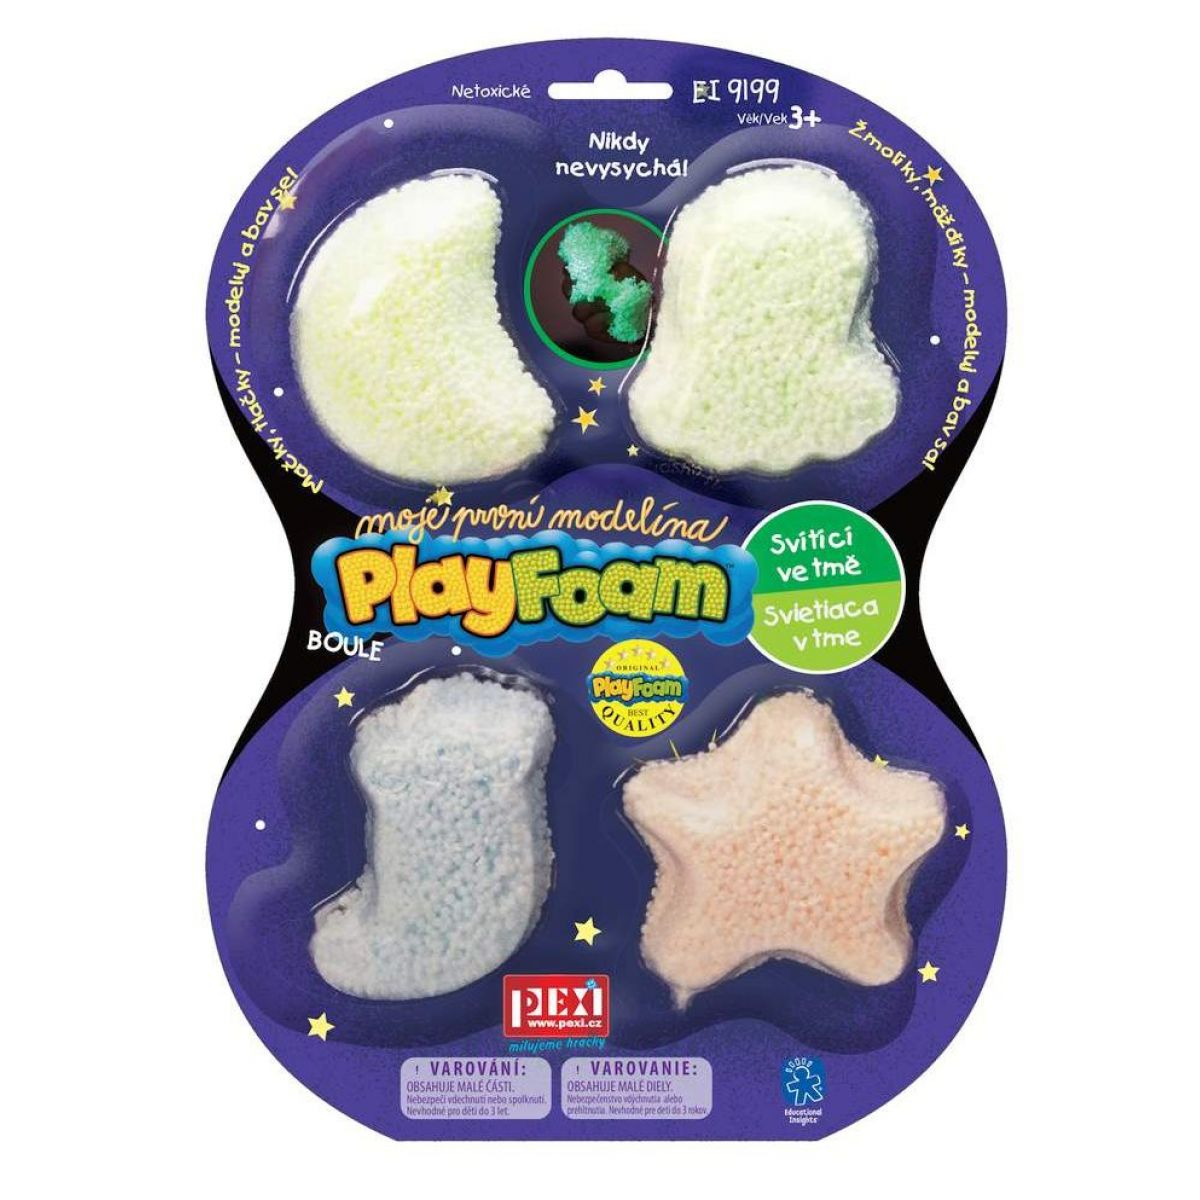 PlayFoam Boule 4pack Svítící